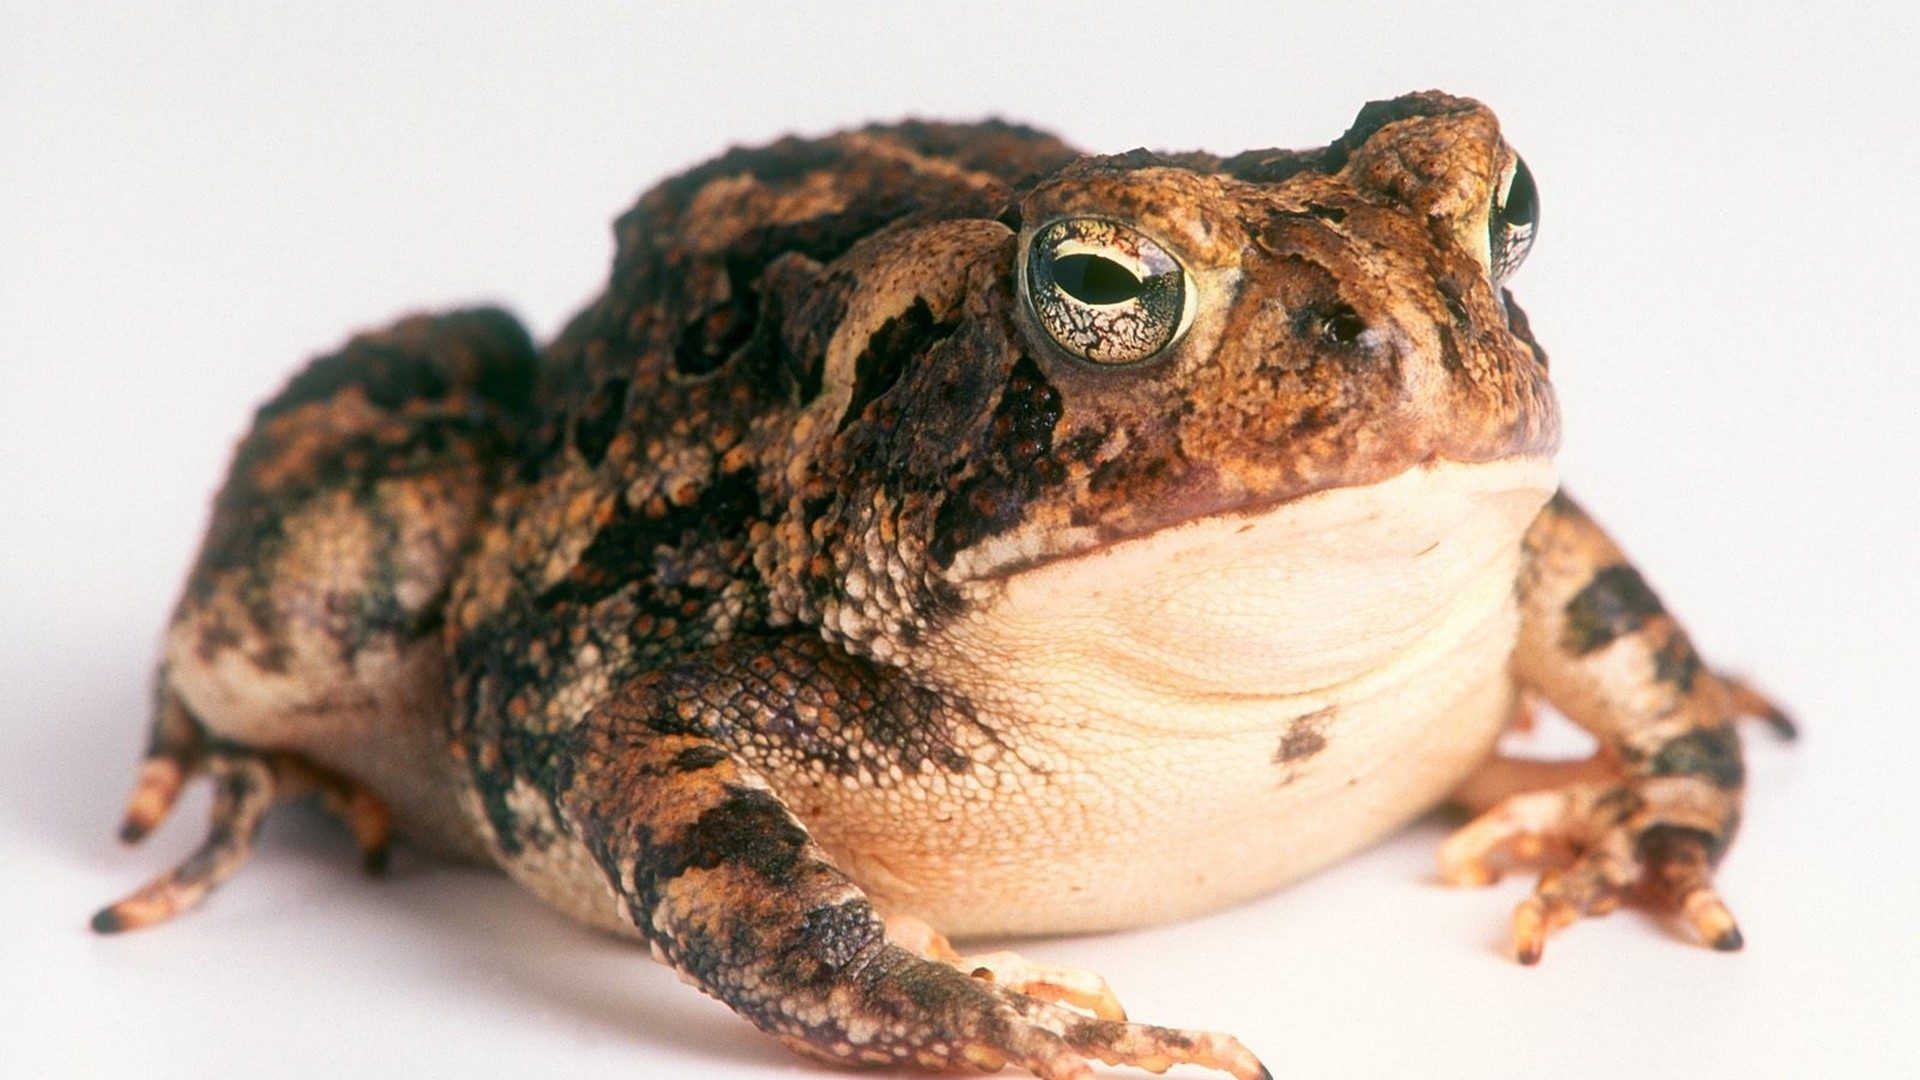 amphibians toads 1920x1080 wallpapers High Quality Wallpapers